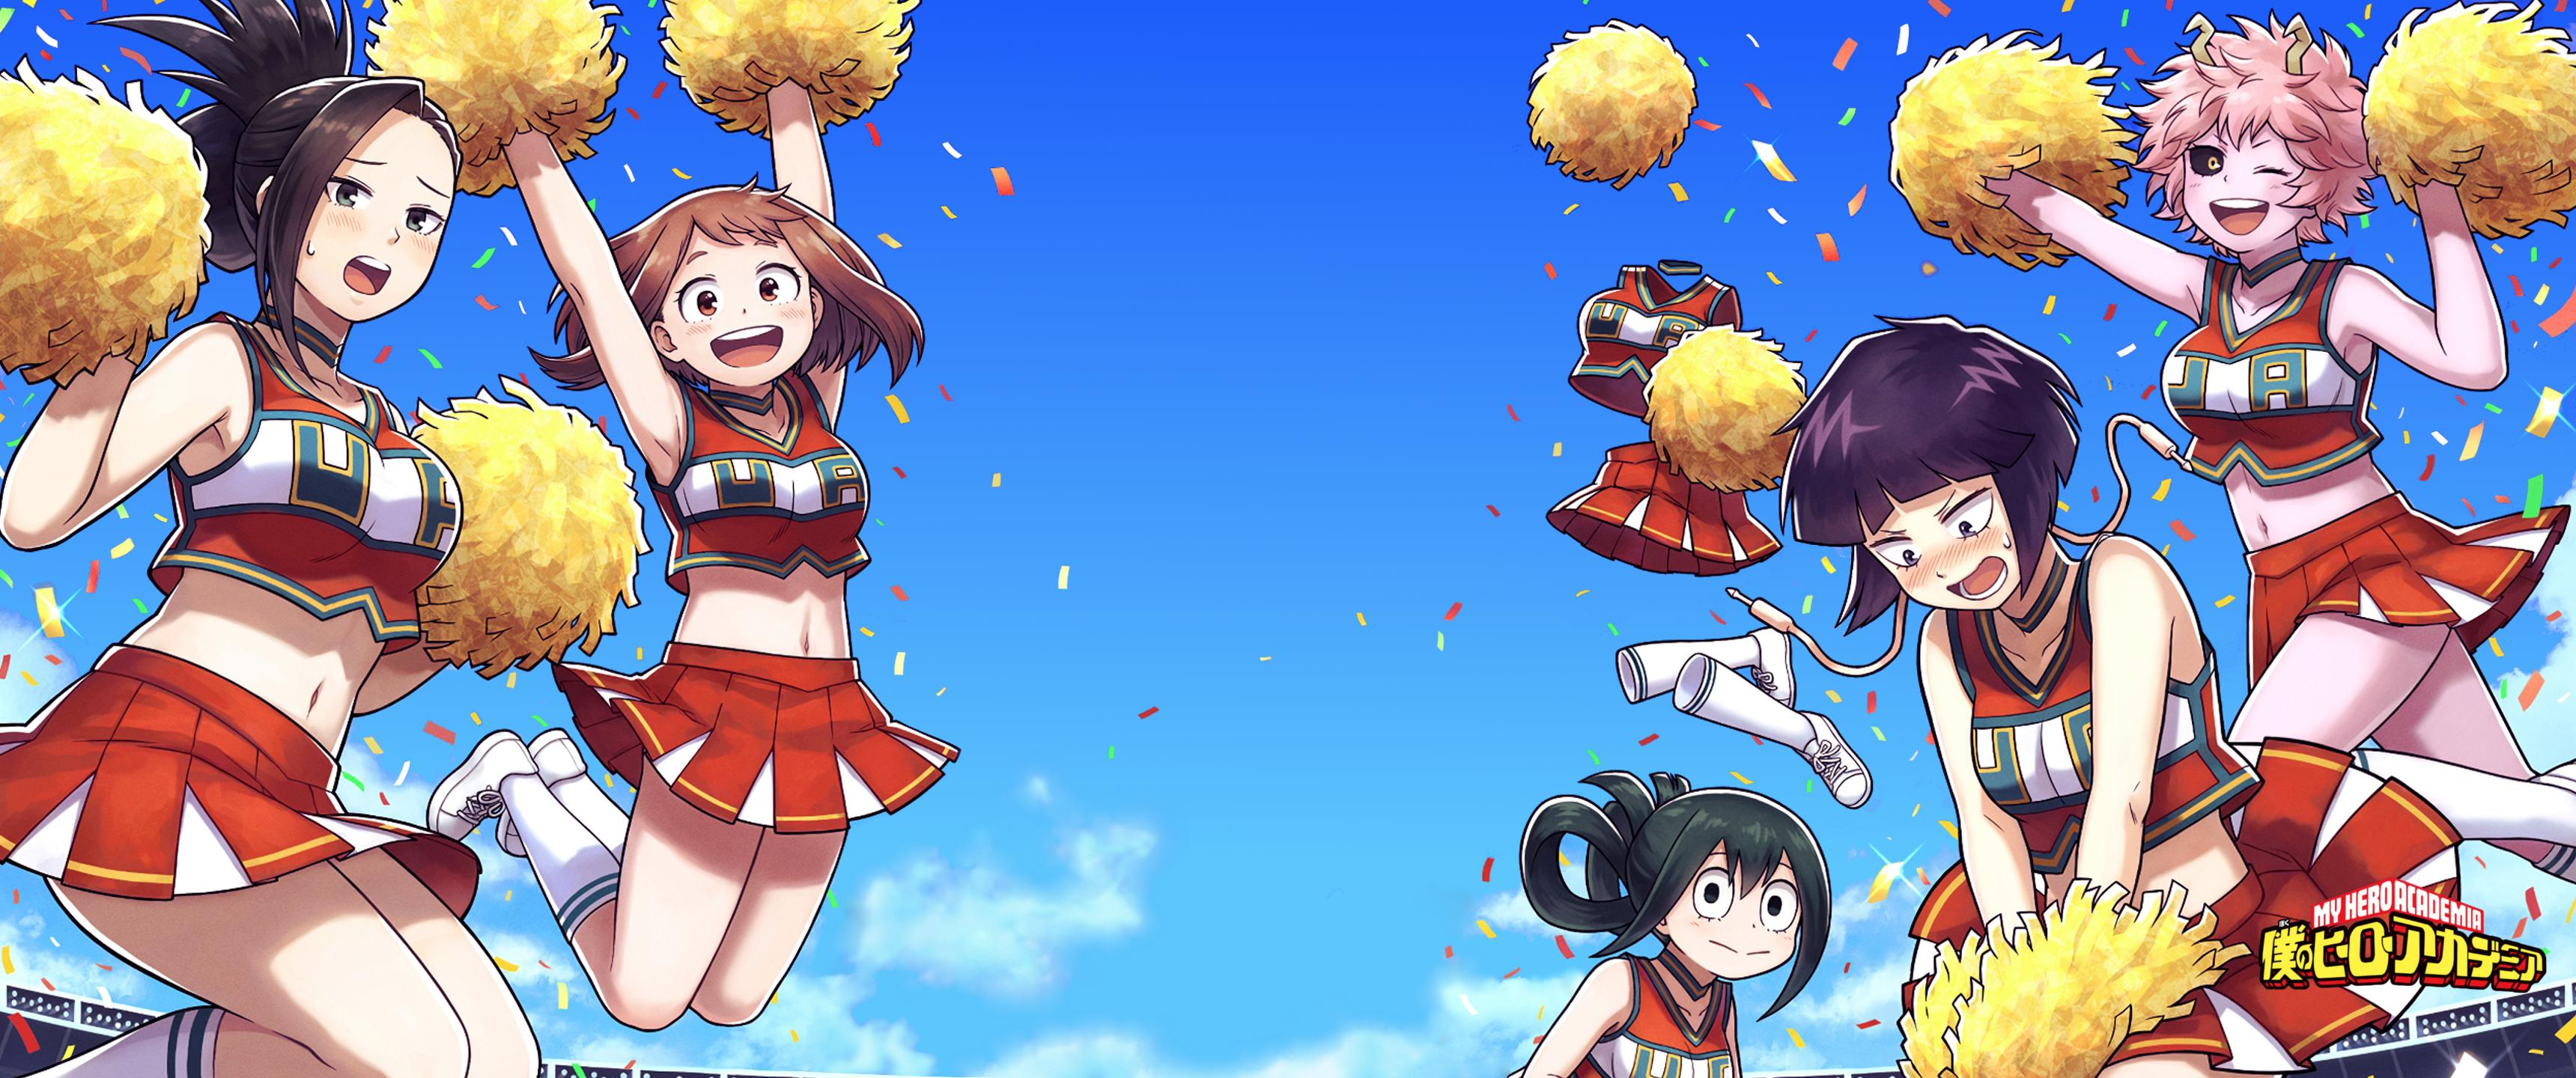 3440x1440 Widened this from 1080p [Boku No Hero Academia][3440x1440 ...